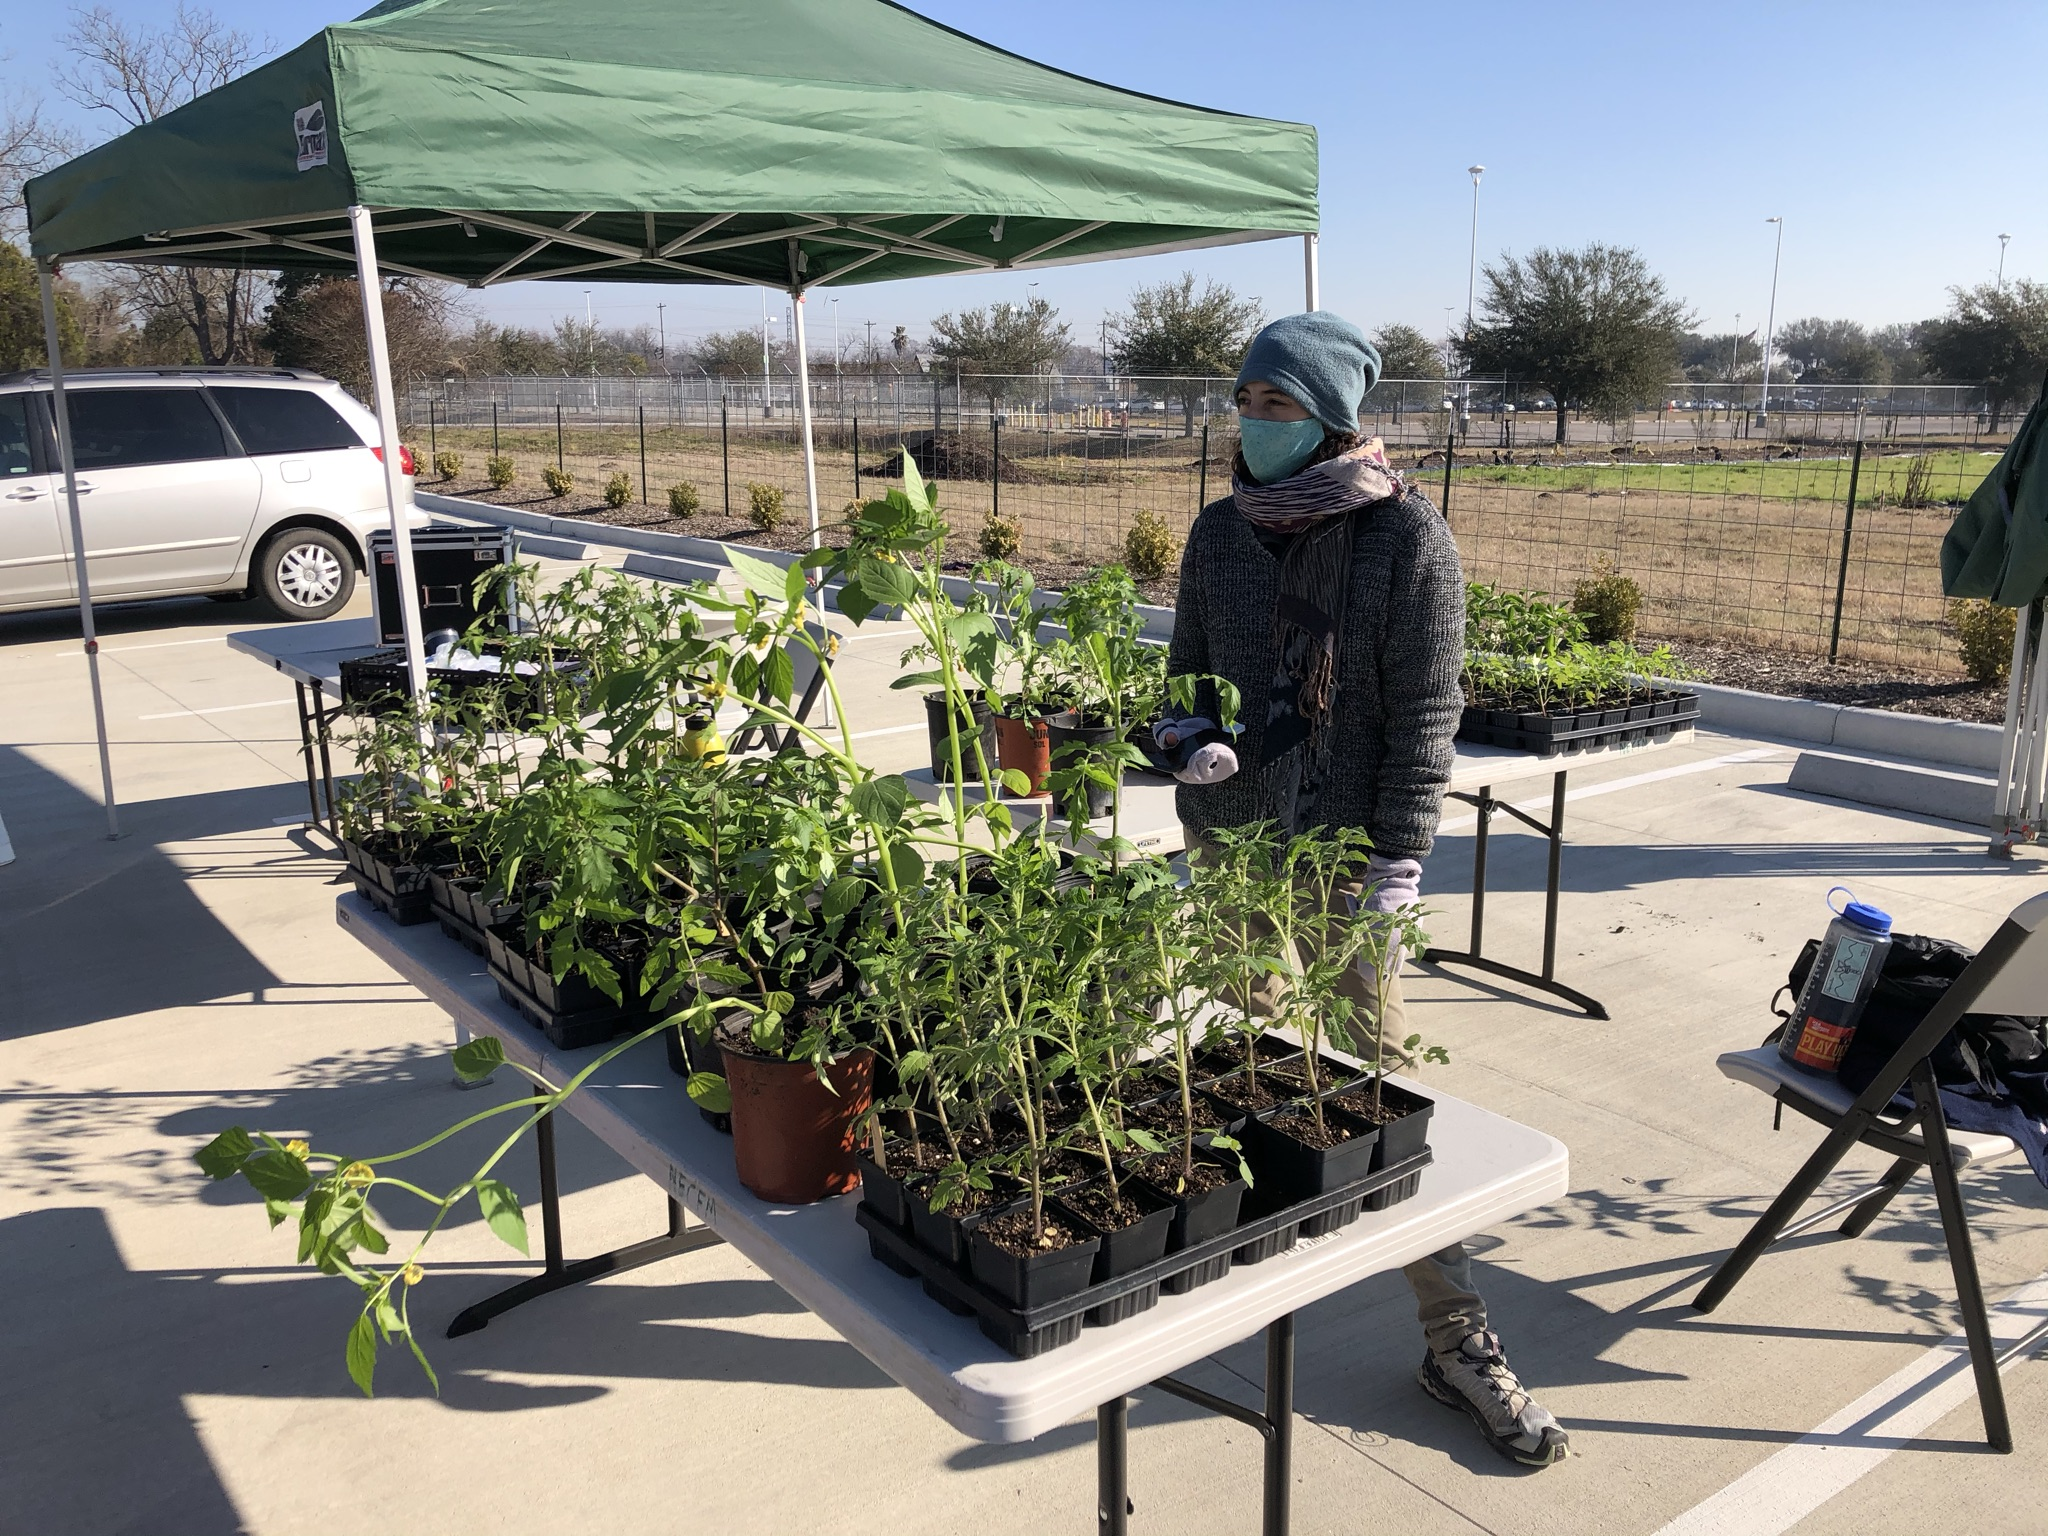 LBJ Farmers Market Plant Sale | Saturday Mar 6th